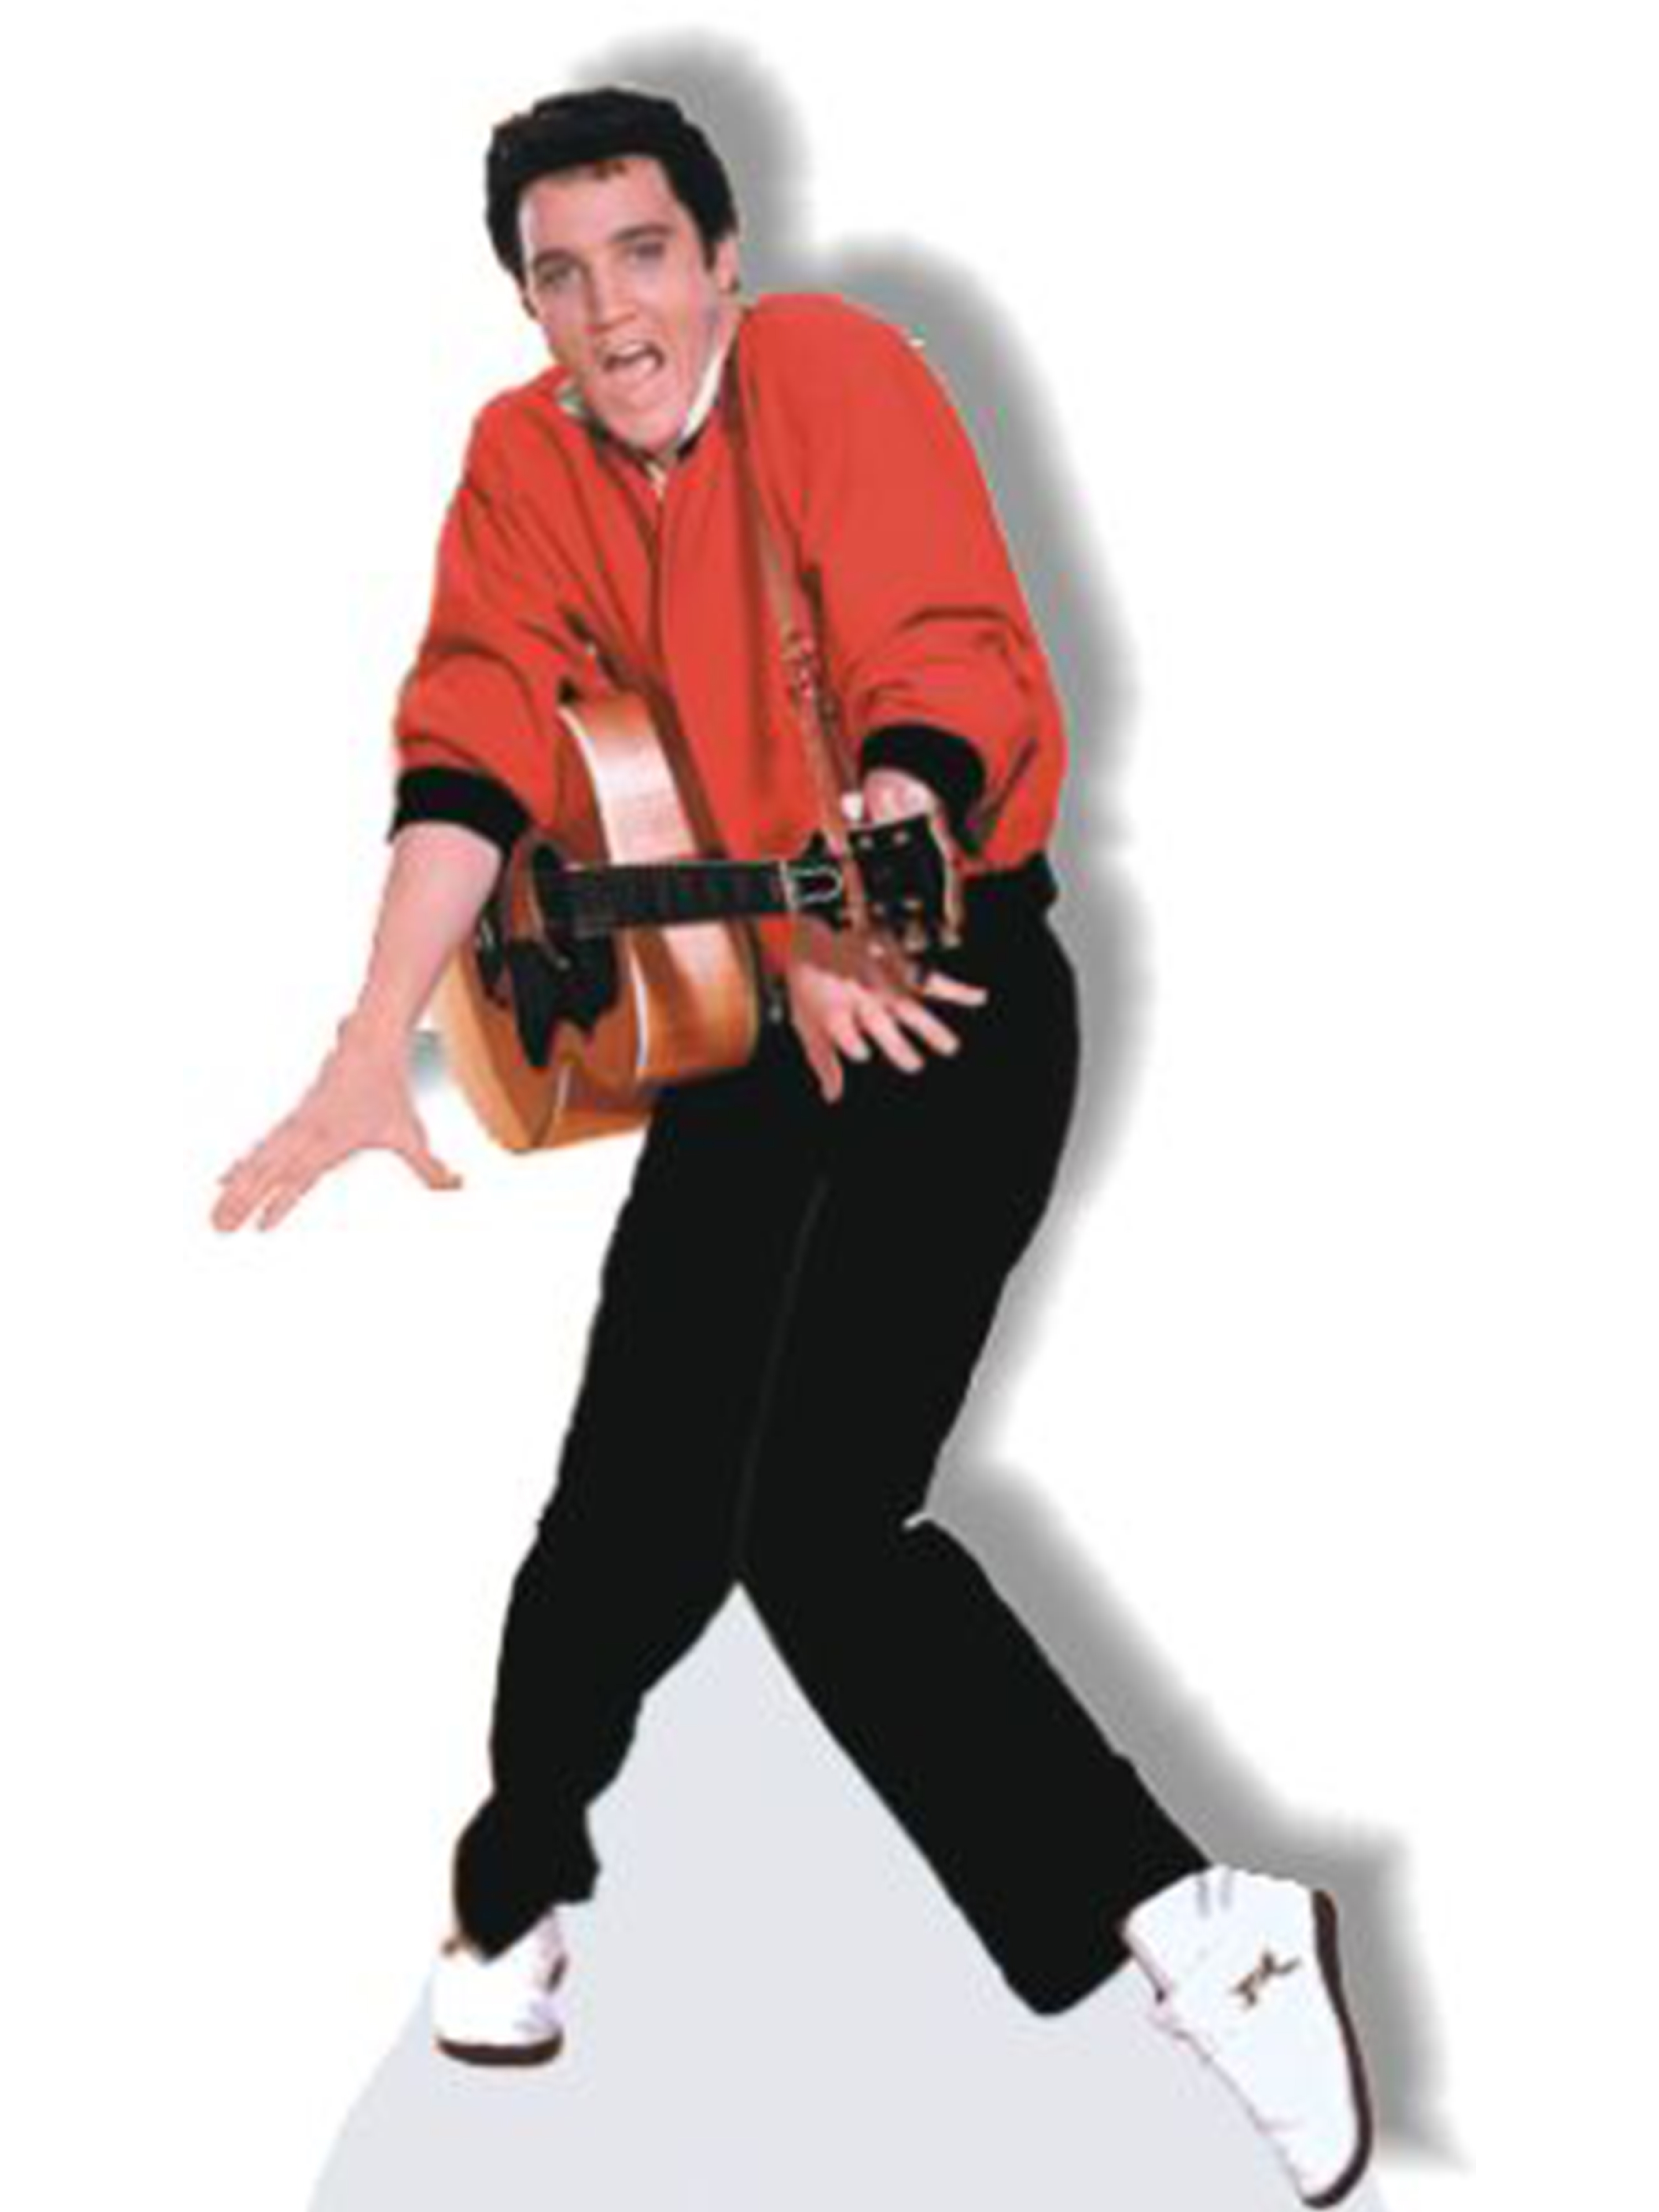 Elvis with Guitar and Red Sweater Cardboard Cutout